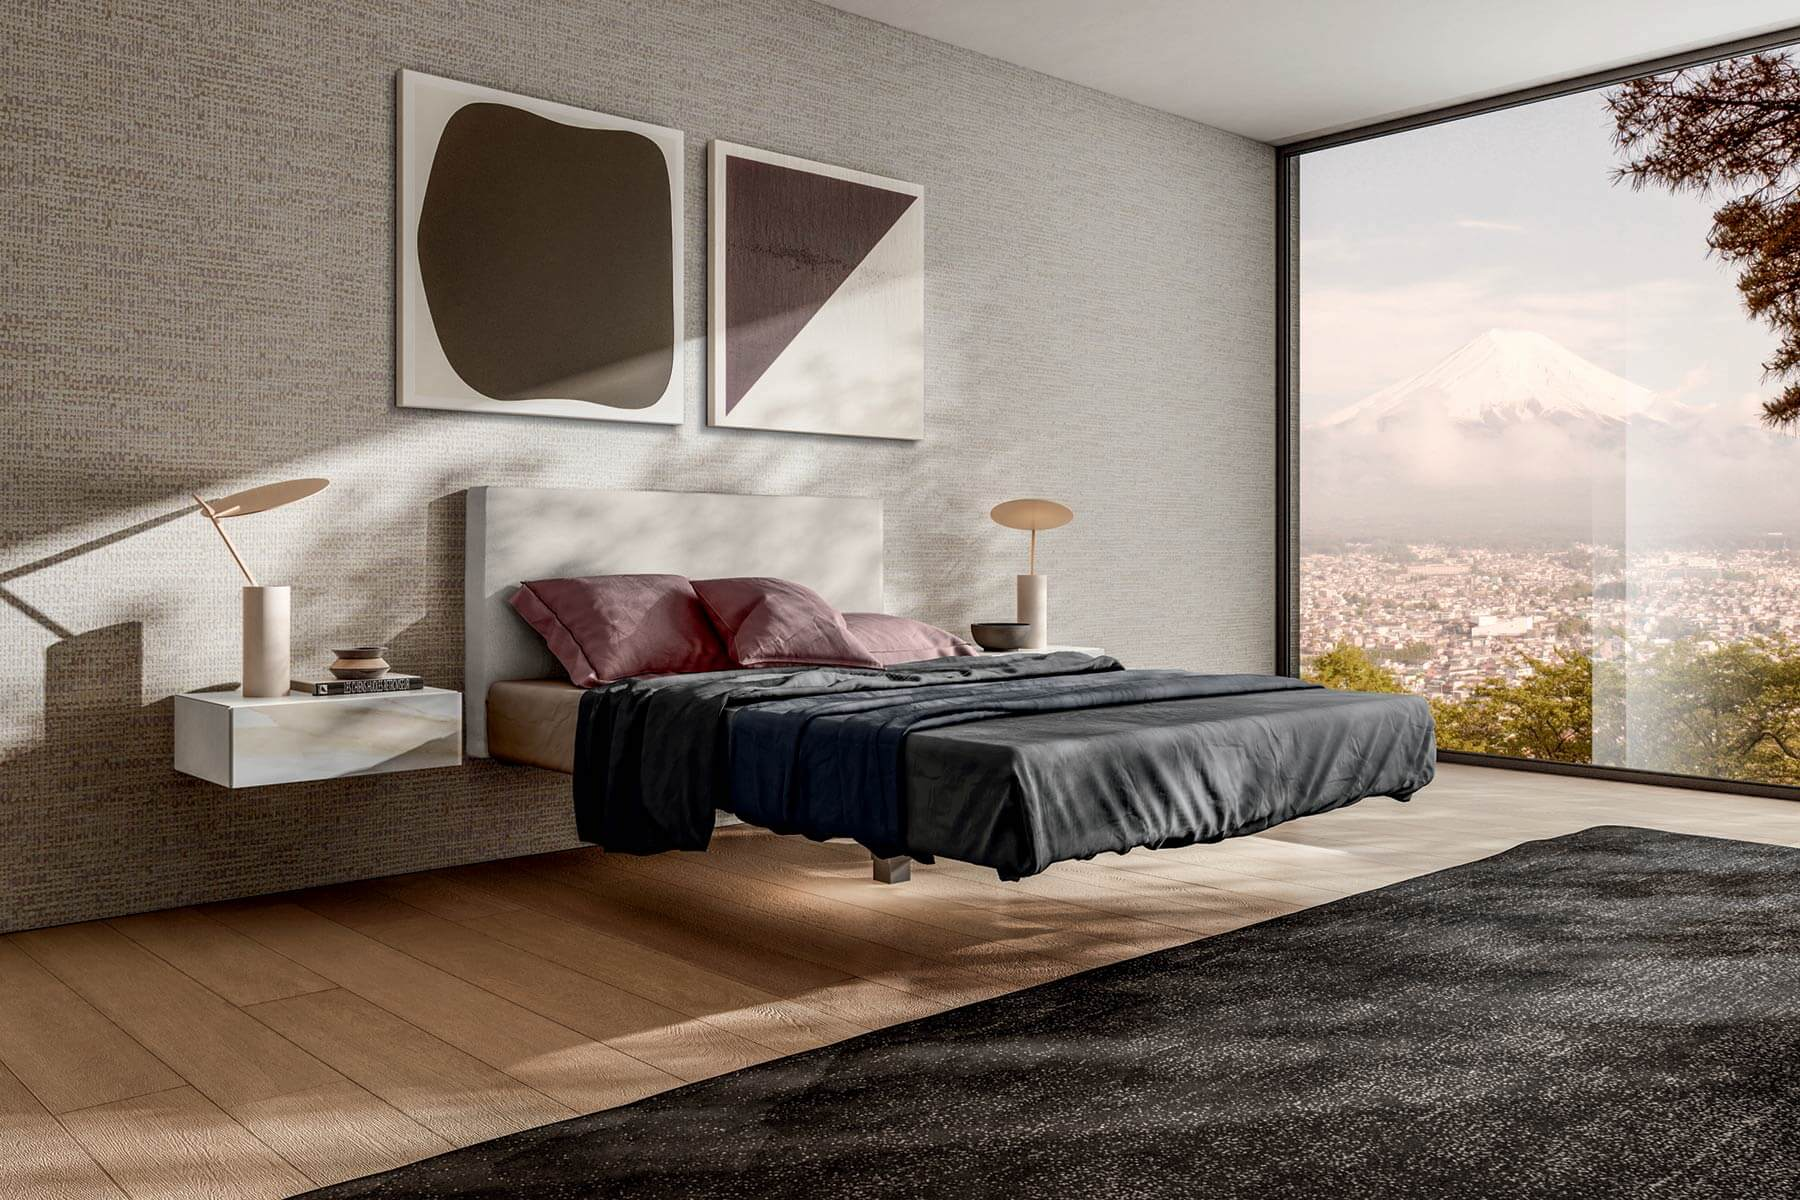 Flutta bed a suspended bed for carefree dreams lago design for Lago furniture